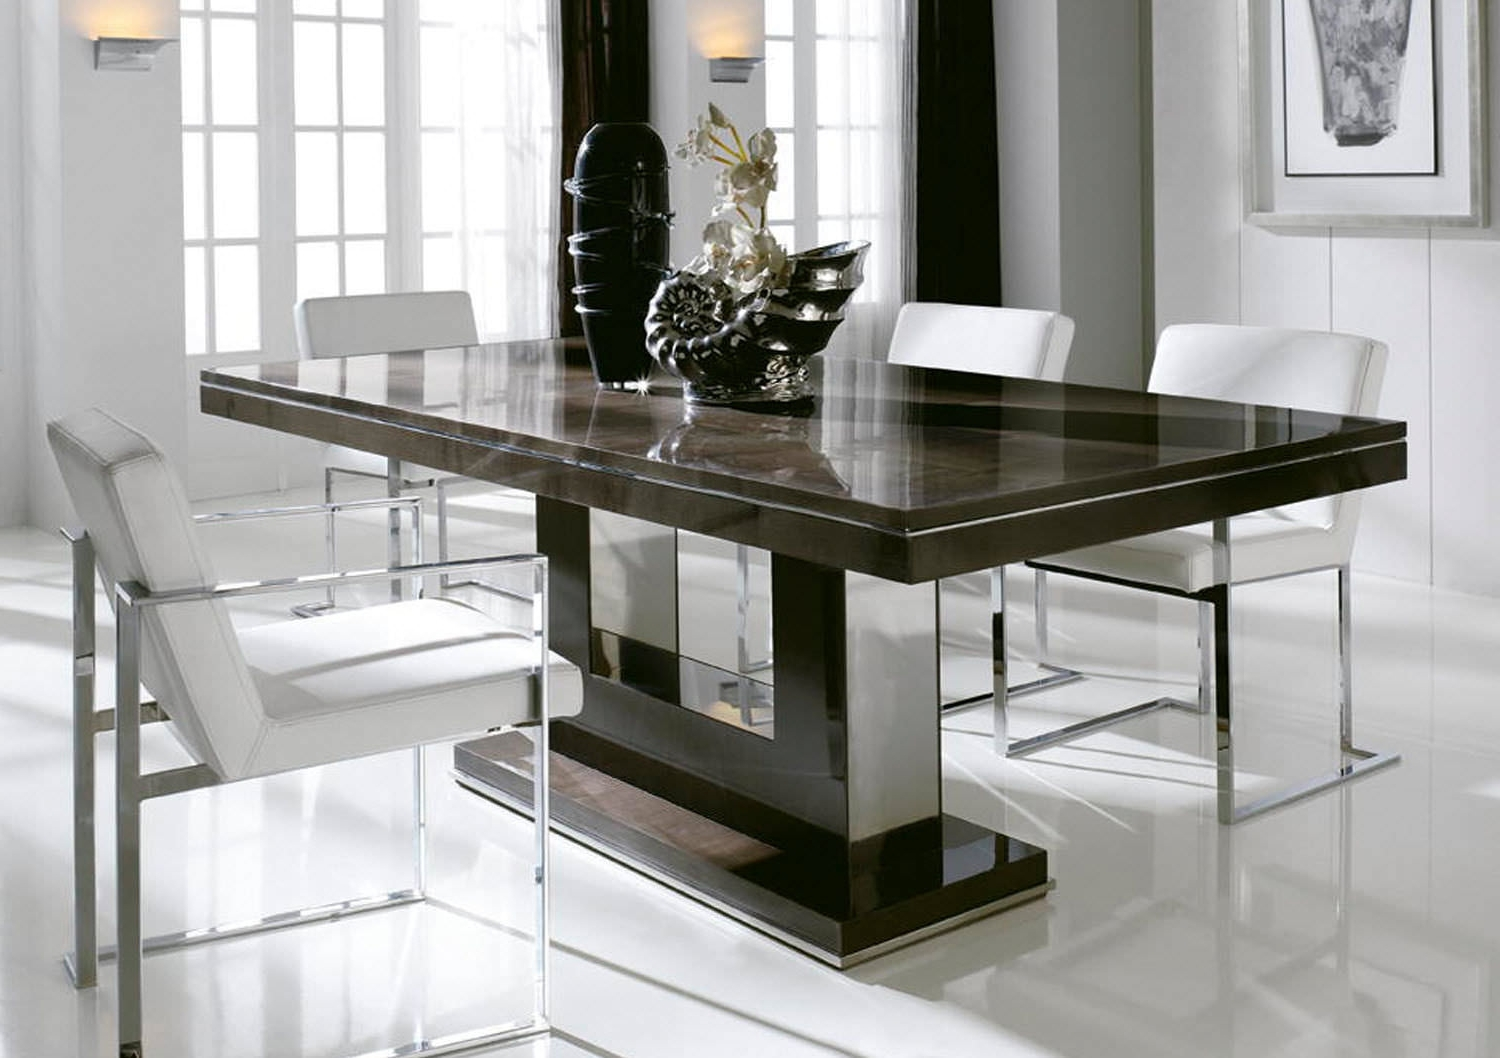 Newest Contemporary Dining Table / Wooden / Rectangular – Event – Amboan In Contemporary Base Dining Tables (Gallery 25 of 25)